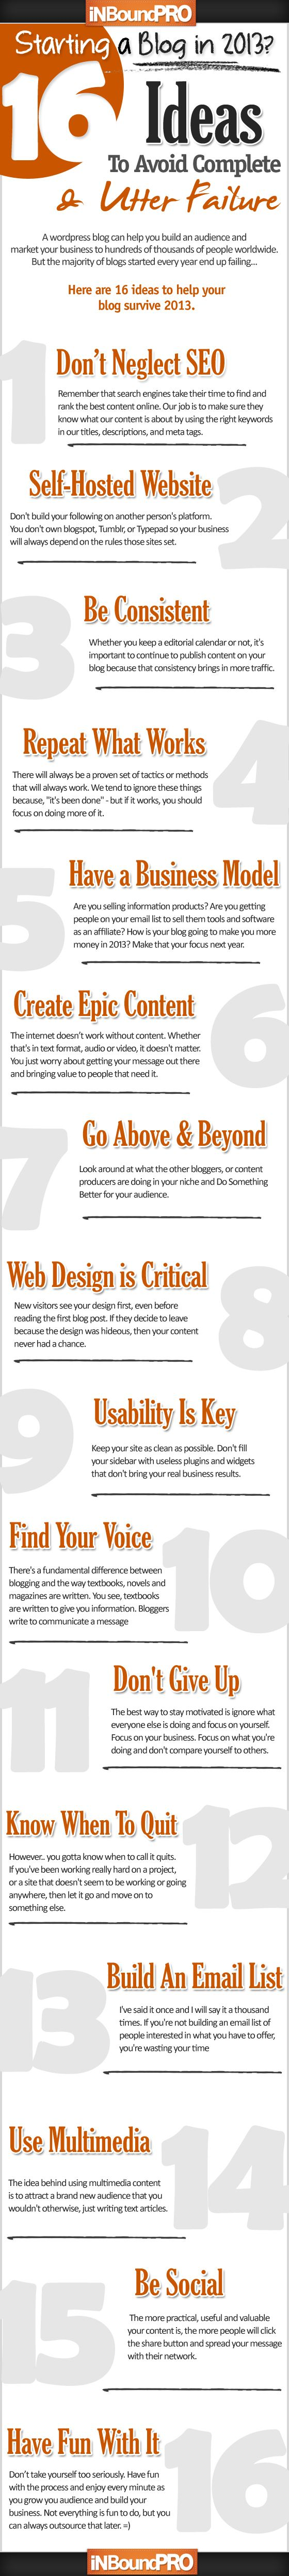 Starting a Blog in 2013 Infographic